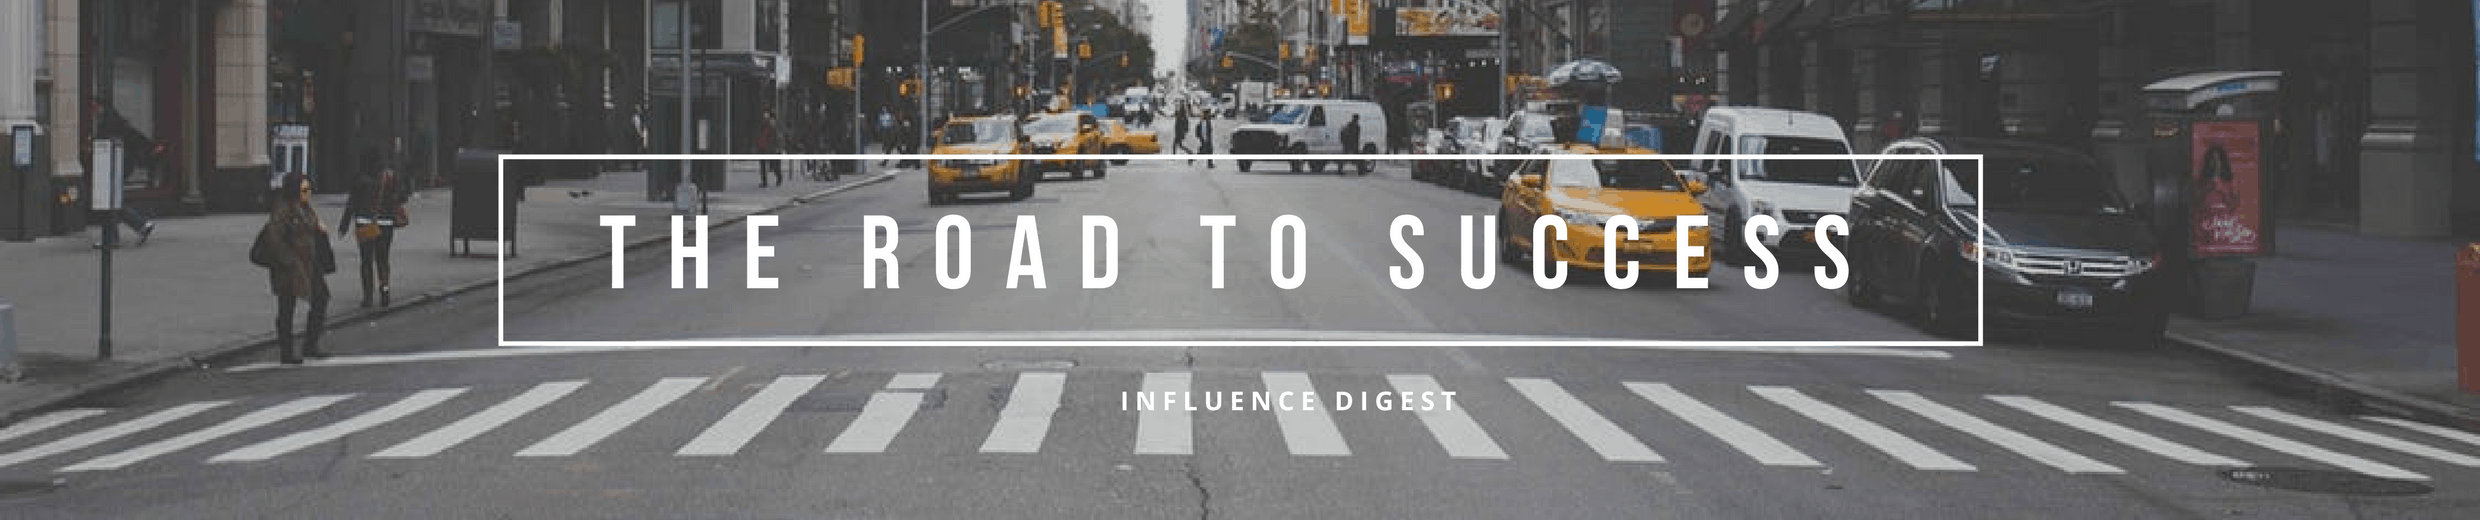 The Road to Success Is Long And Boring - Influence Digest